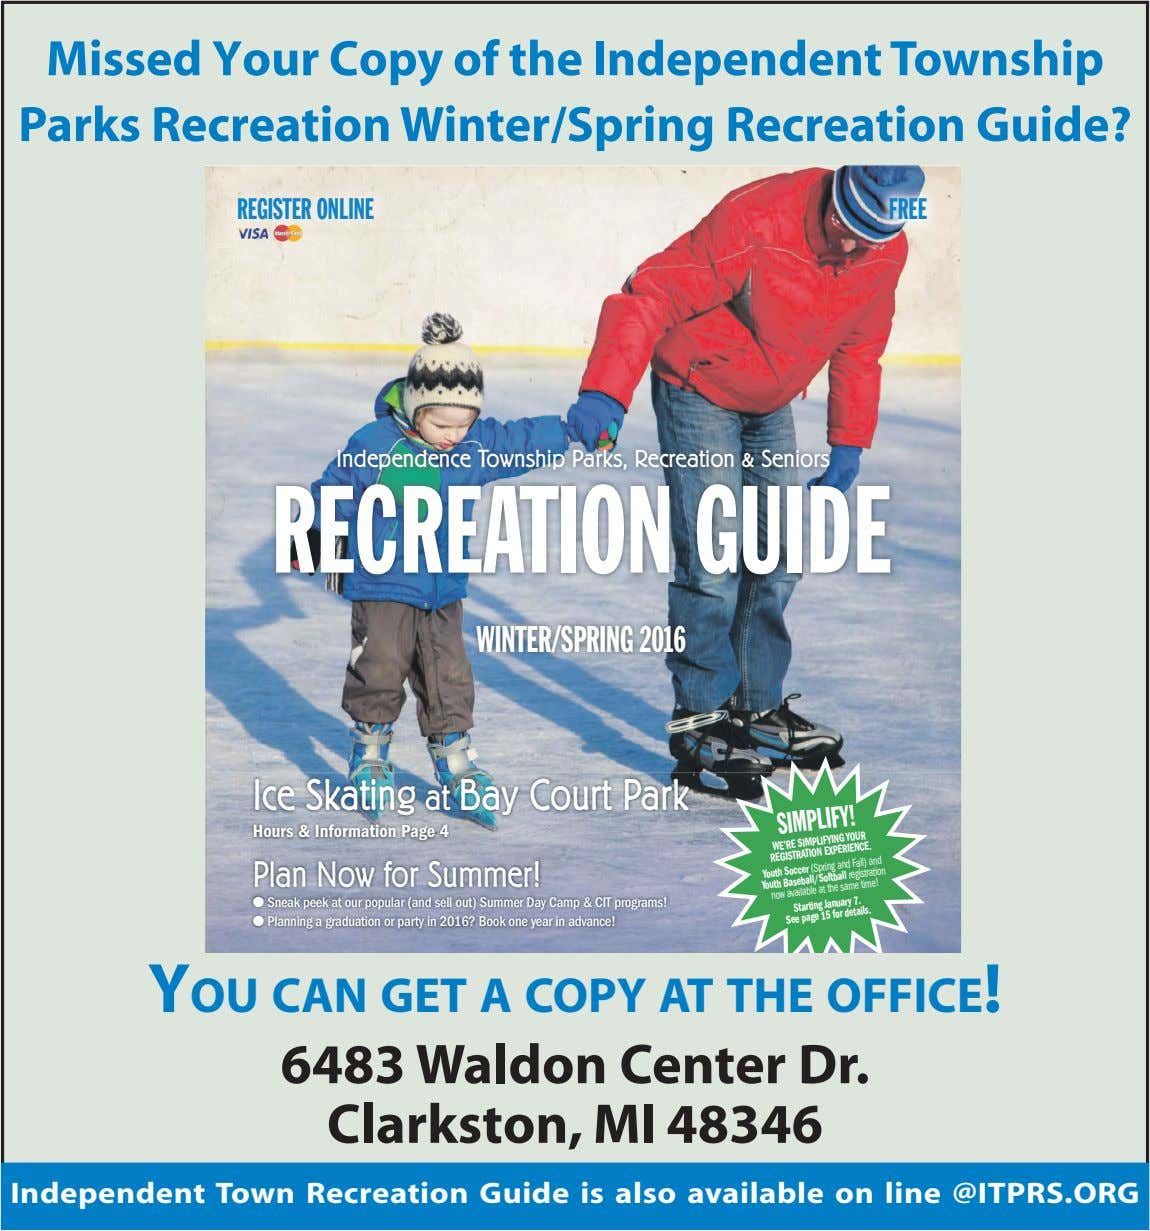 Missed Your Copy of the Independent Township Parks Recreation Winter/Spring Recreation Guide? REGISTER ONLINE FREE